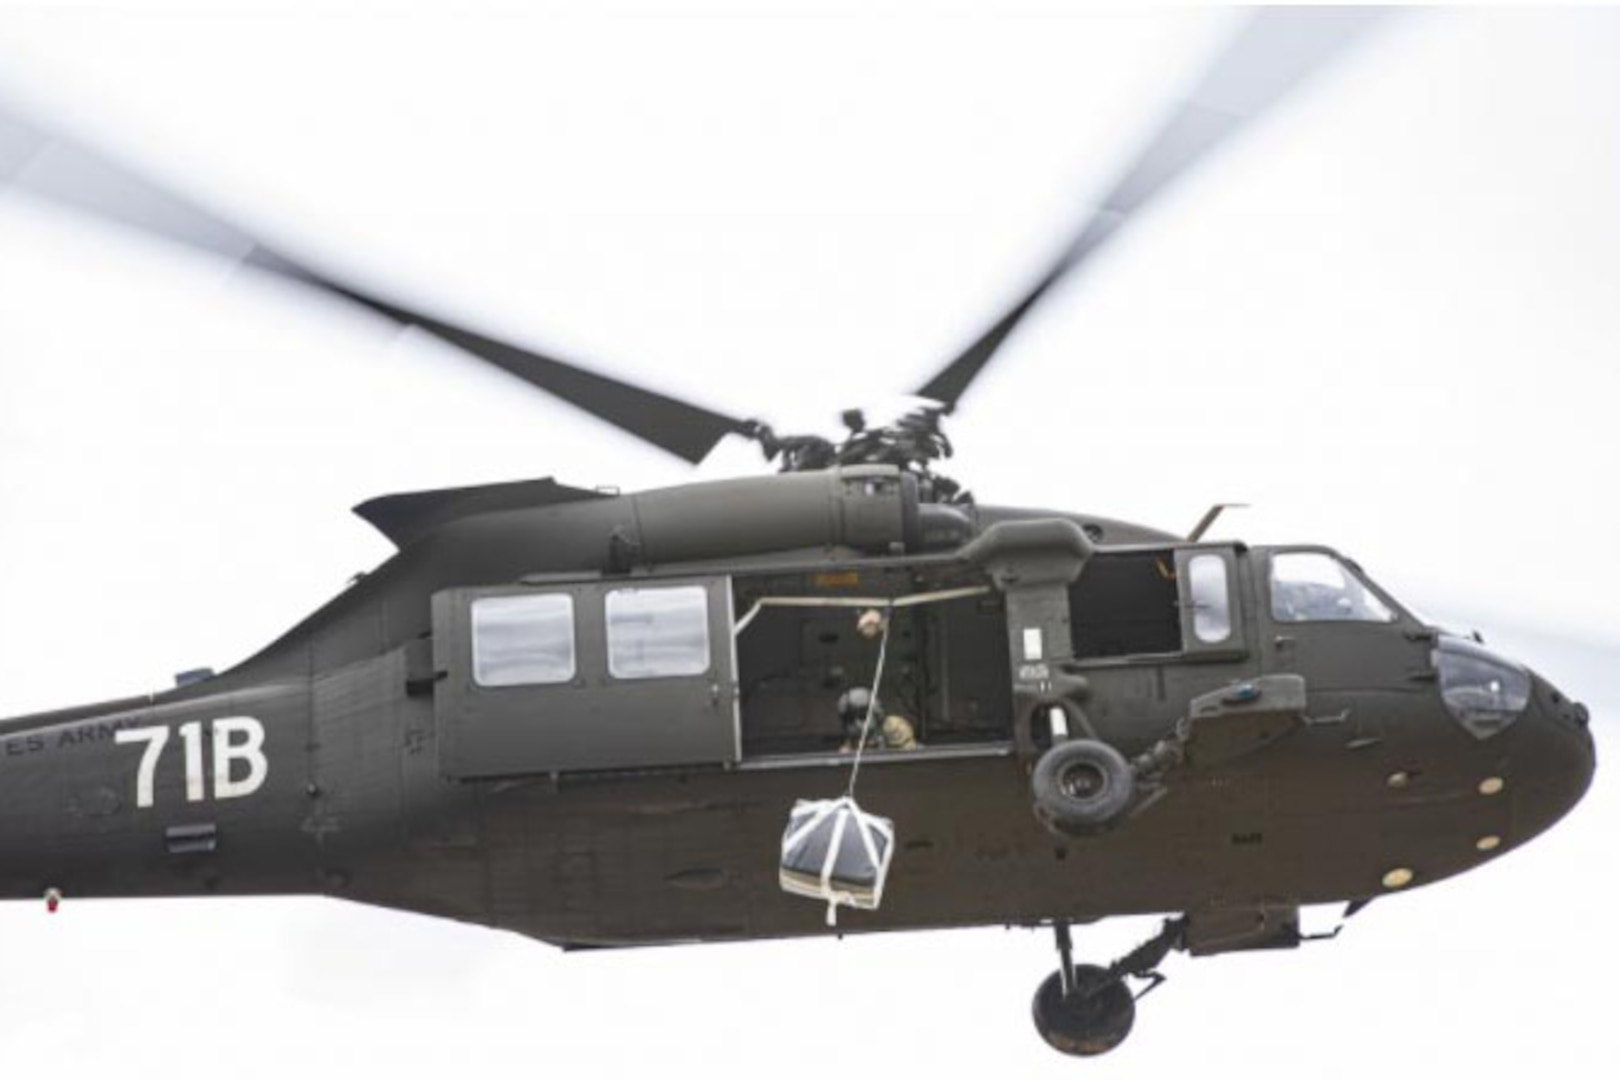 A helicopter flies while a crew member inside the helicopter prepares an emergency re-supply drop.